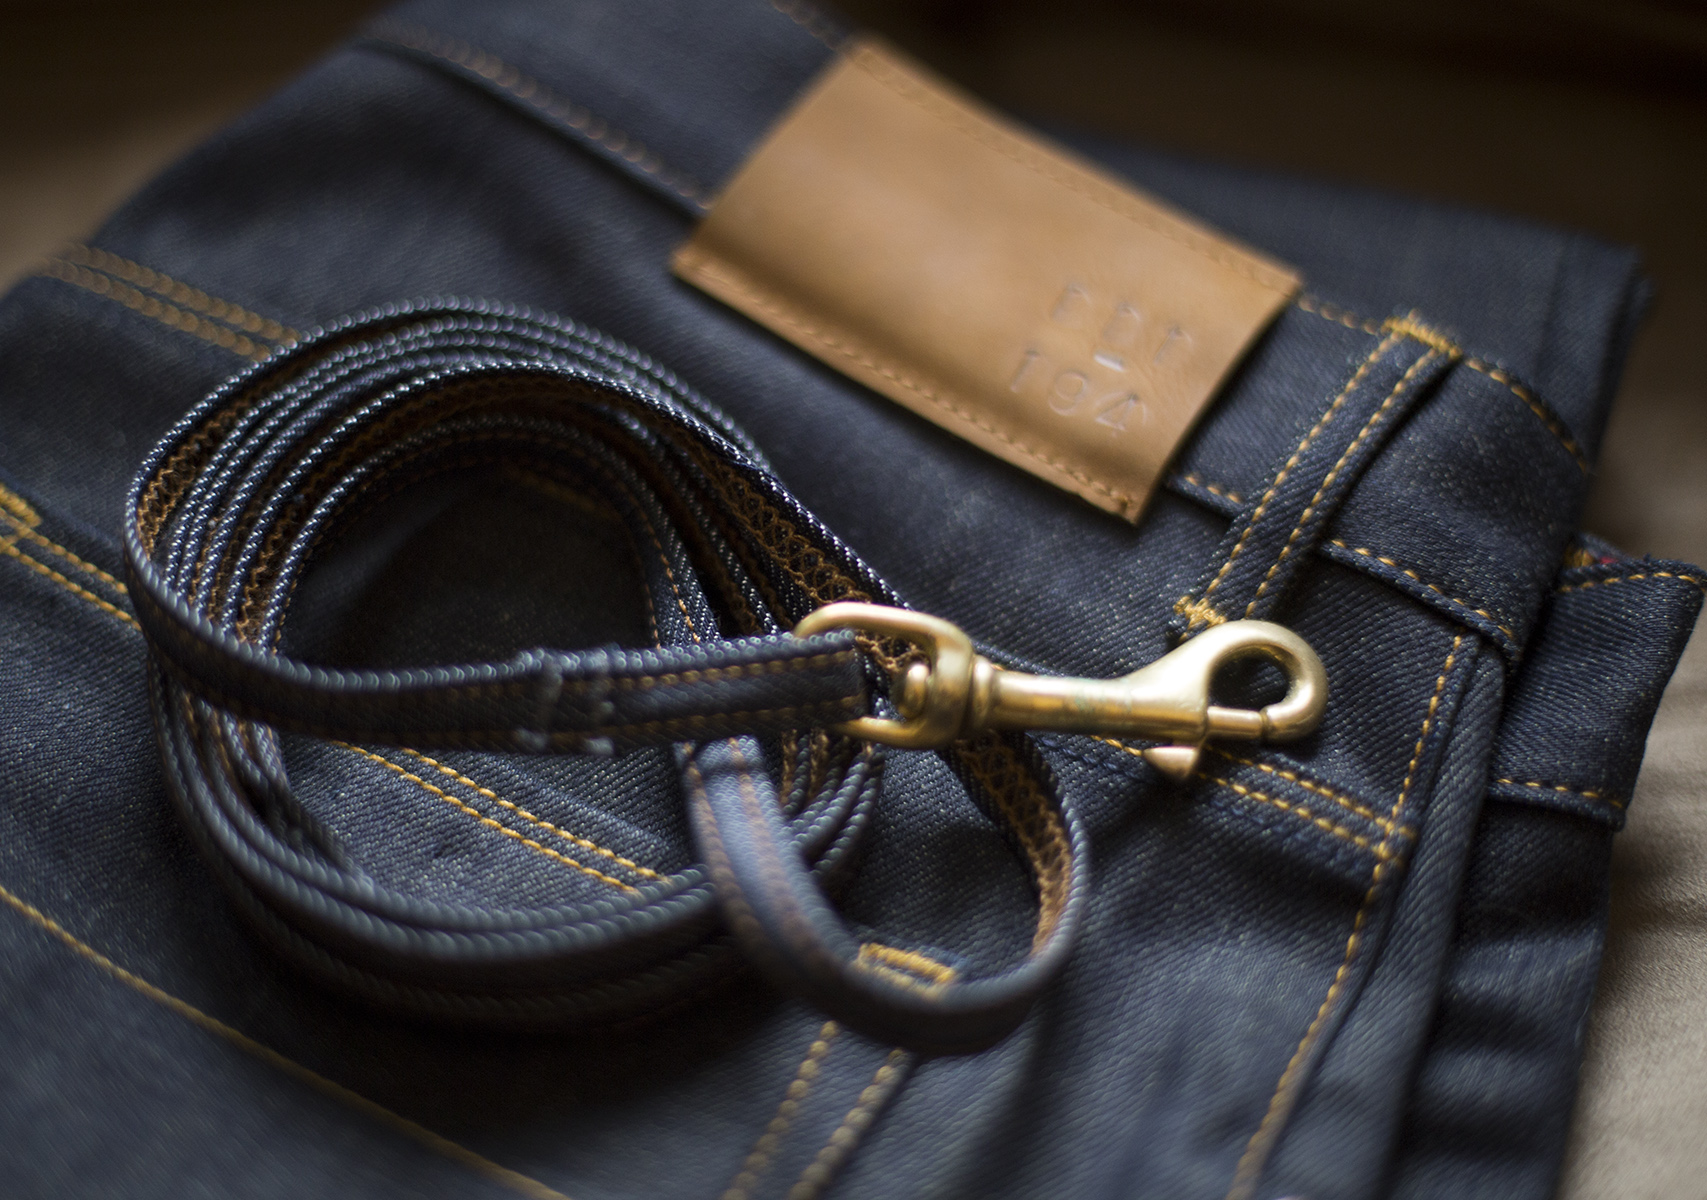 New jeans for me and a leash for Zeiss.